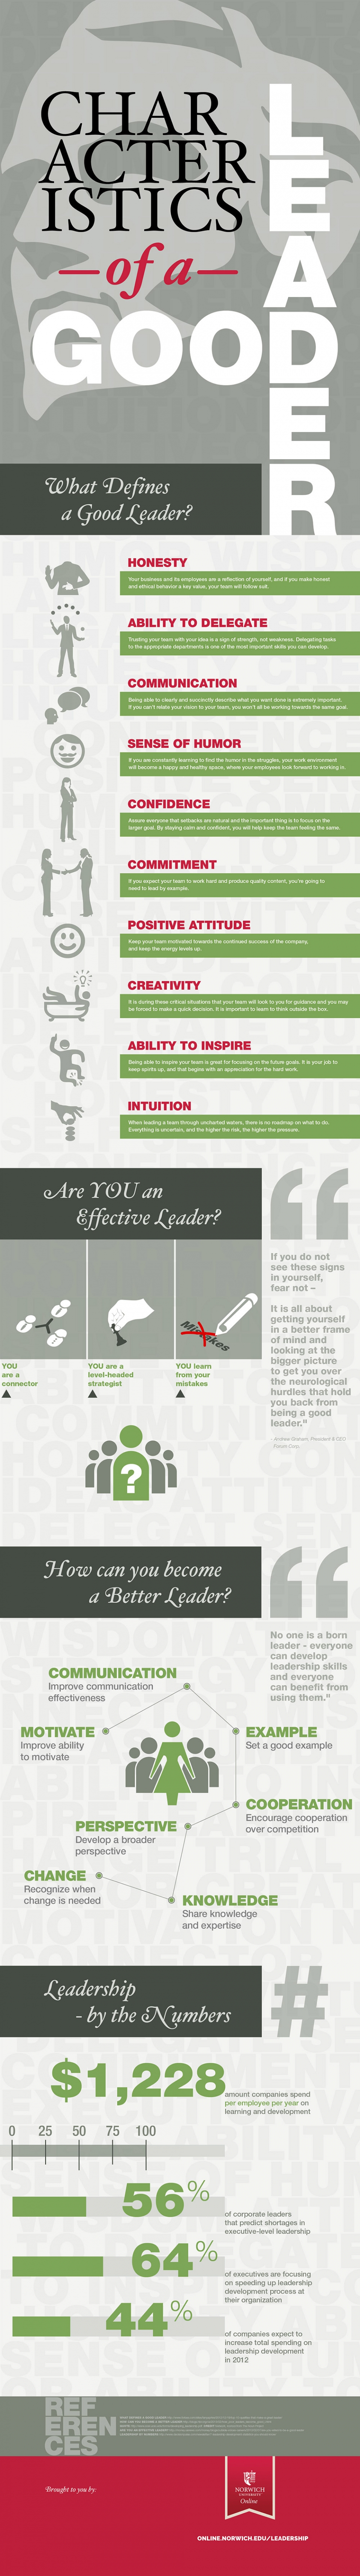 characteristics of a good leader infographic image